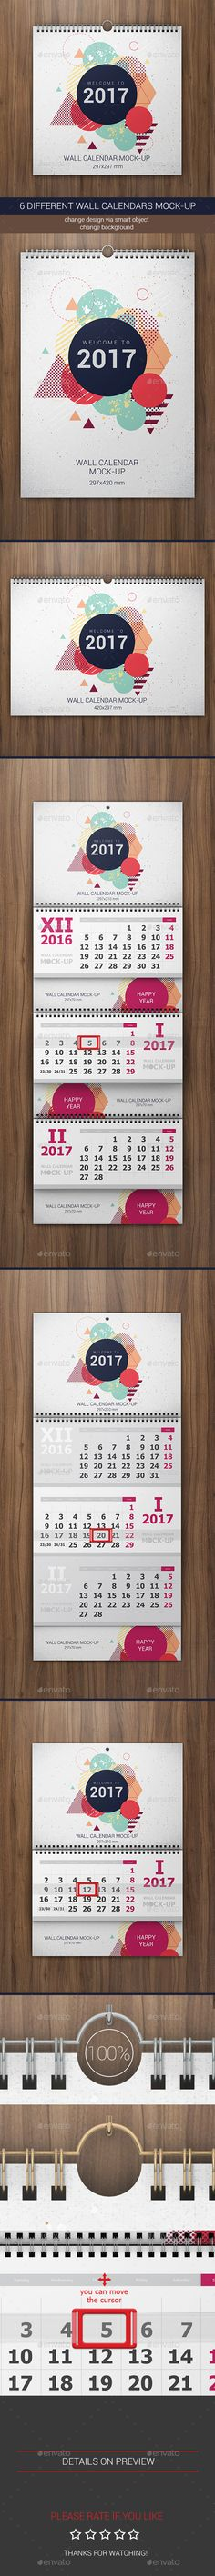 Wall Calendar   Calendar  Ai Illustrator And Template